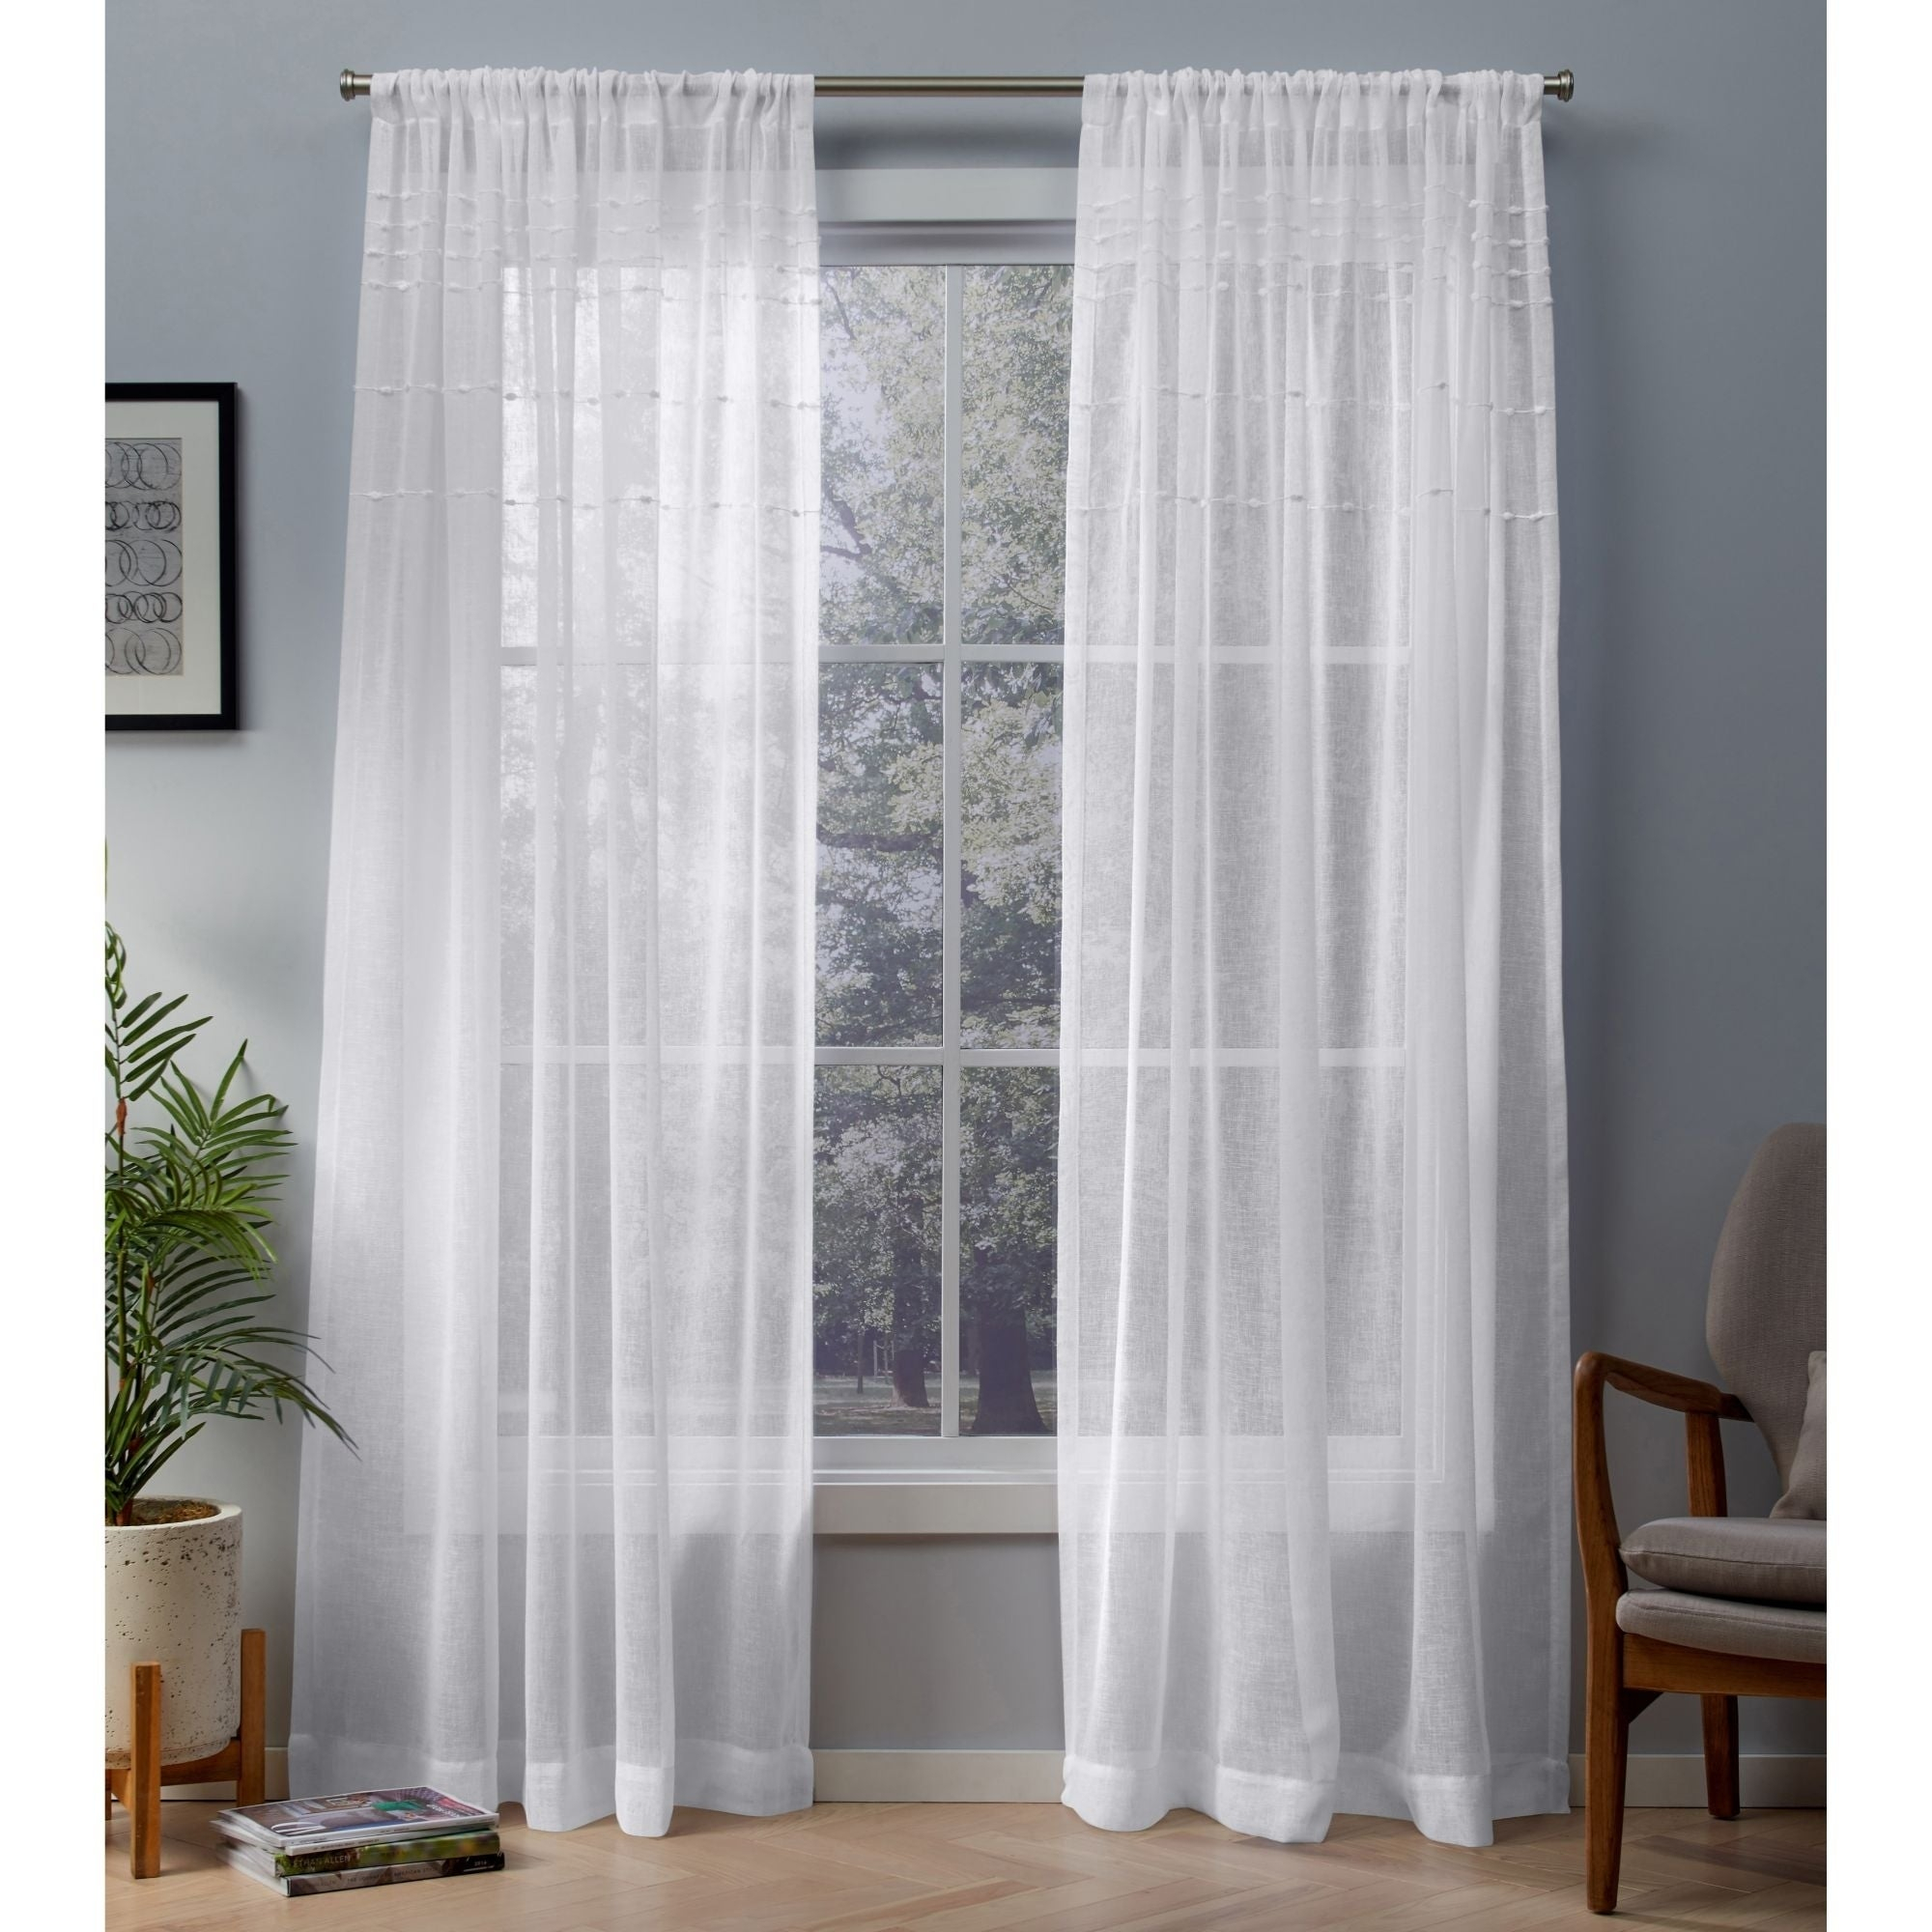 Ati Home Davos Embellished Sheer Rod Pocket Top Curtain Panel Pair Regarding Velvet Dream Silver Curtain Panel Pairs (View 18 of 31)